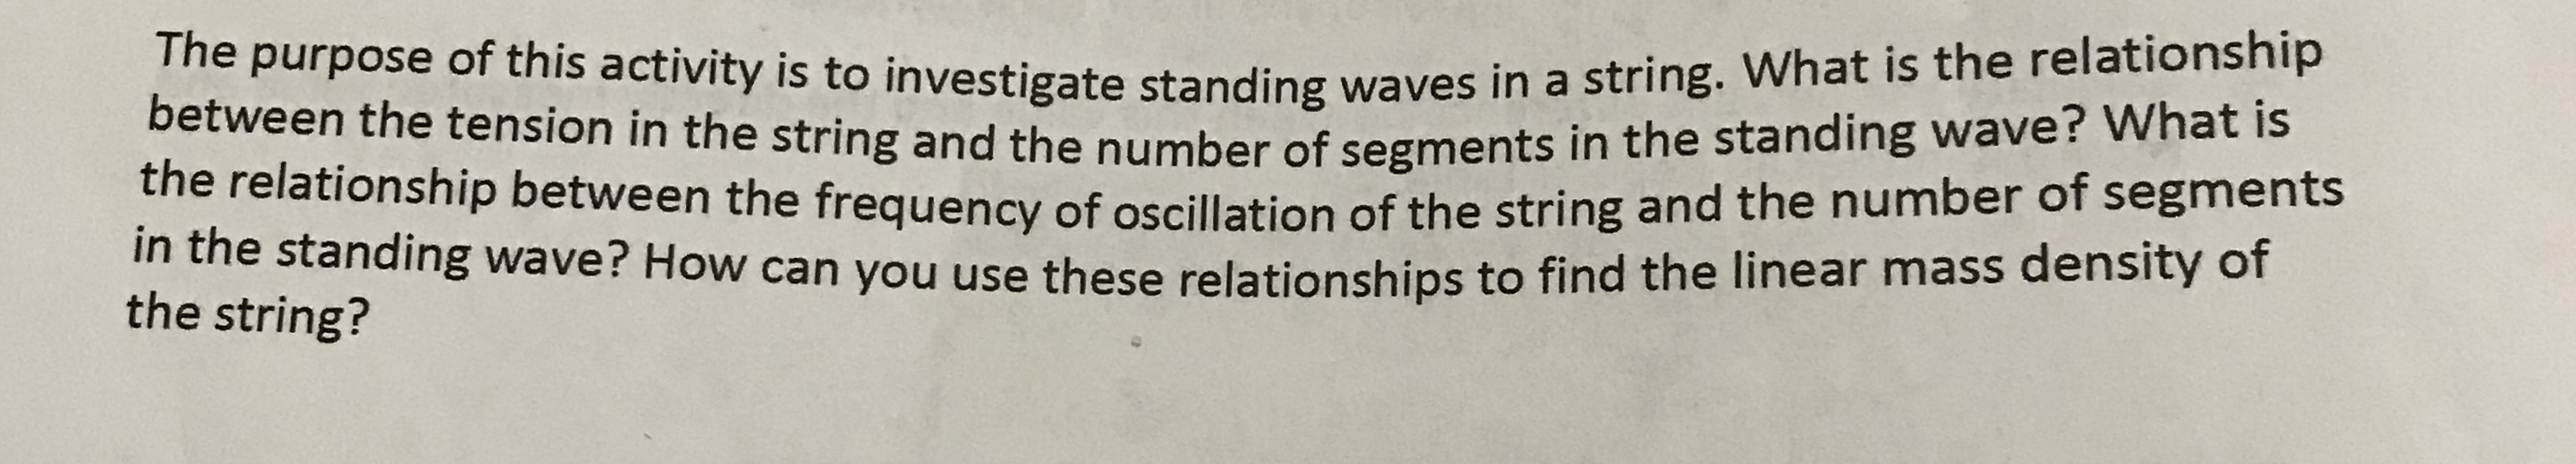 The purpose of this activity is to investigate standing waves in between the tension in the string and the number of segments in the relationship between the frequency of oscillation of the string arn in the standing wave? How can you use these relationships to find the string? a string. What is the relationship the standing wave? What is the linear mass density of